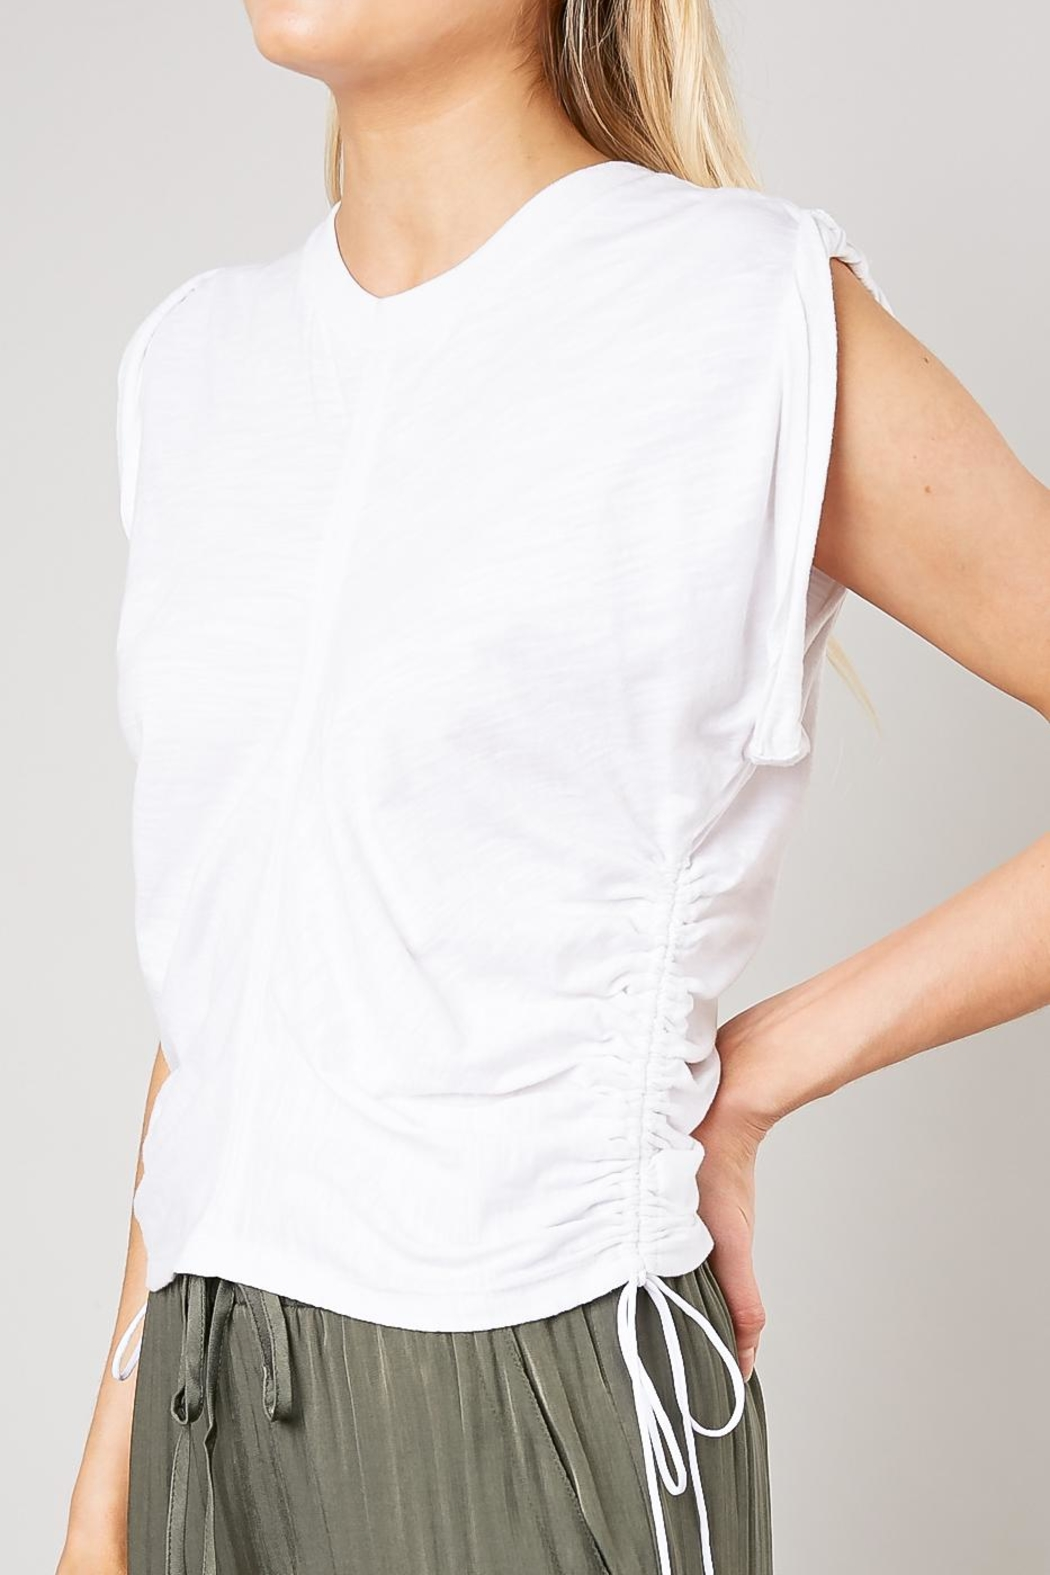 Mustard Seed Crinkled Twist Tee - Back Cropped Image